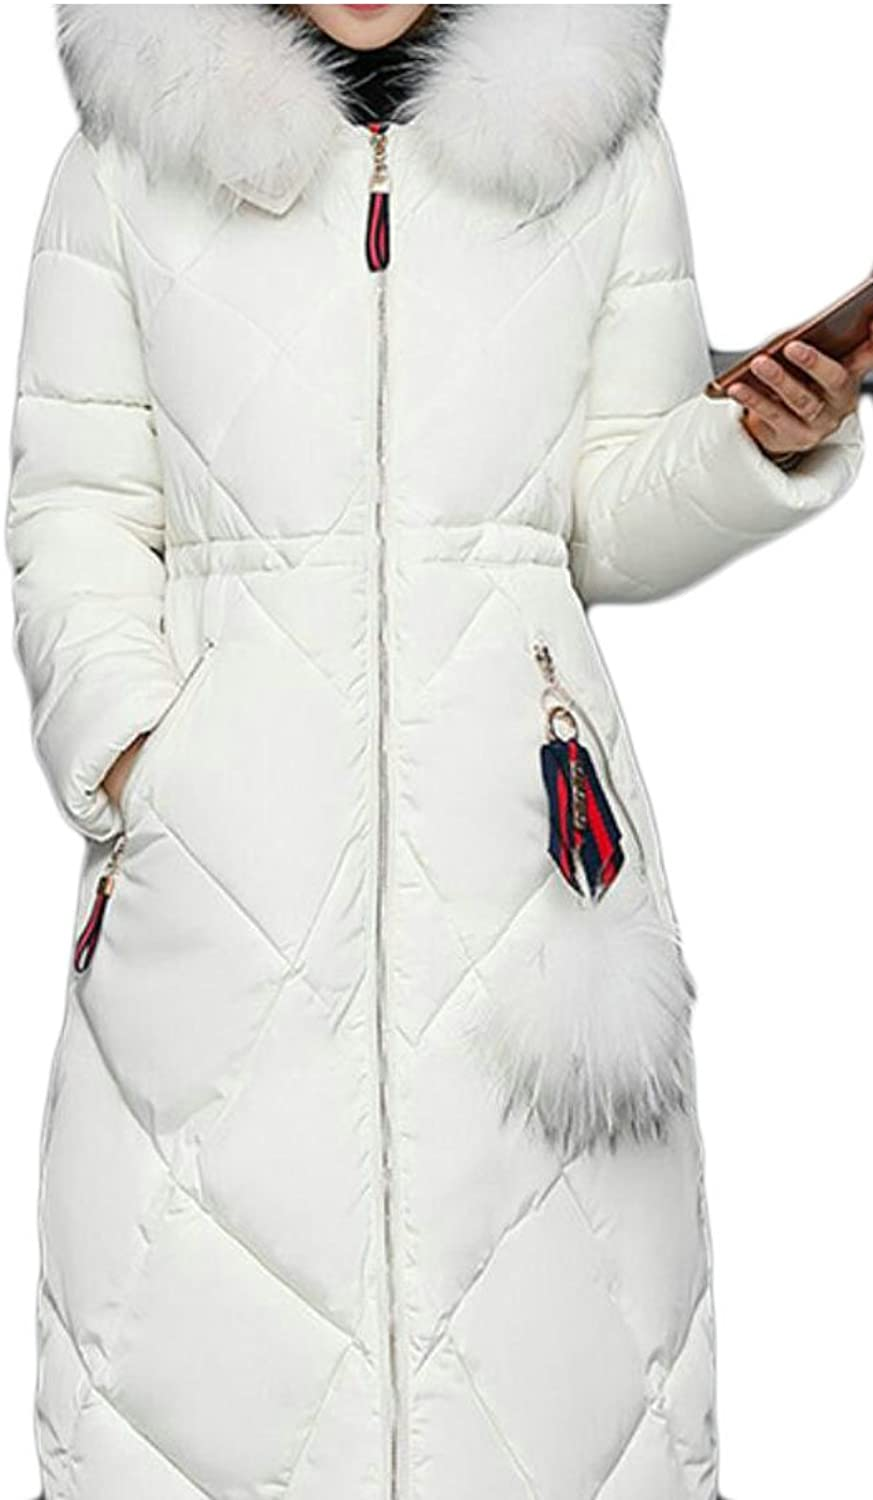 GenericWomen Generic Women's Down Coat With Fur Hood Down Parka Puffer Overcoat Jacket